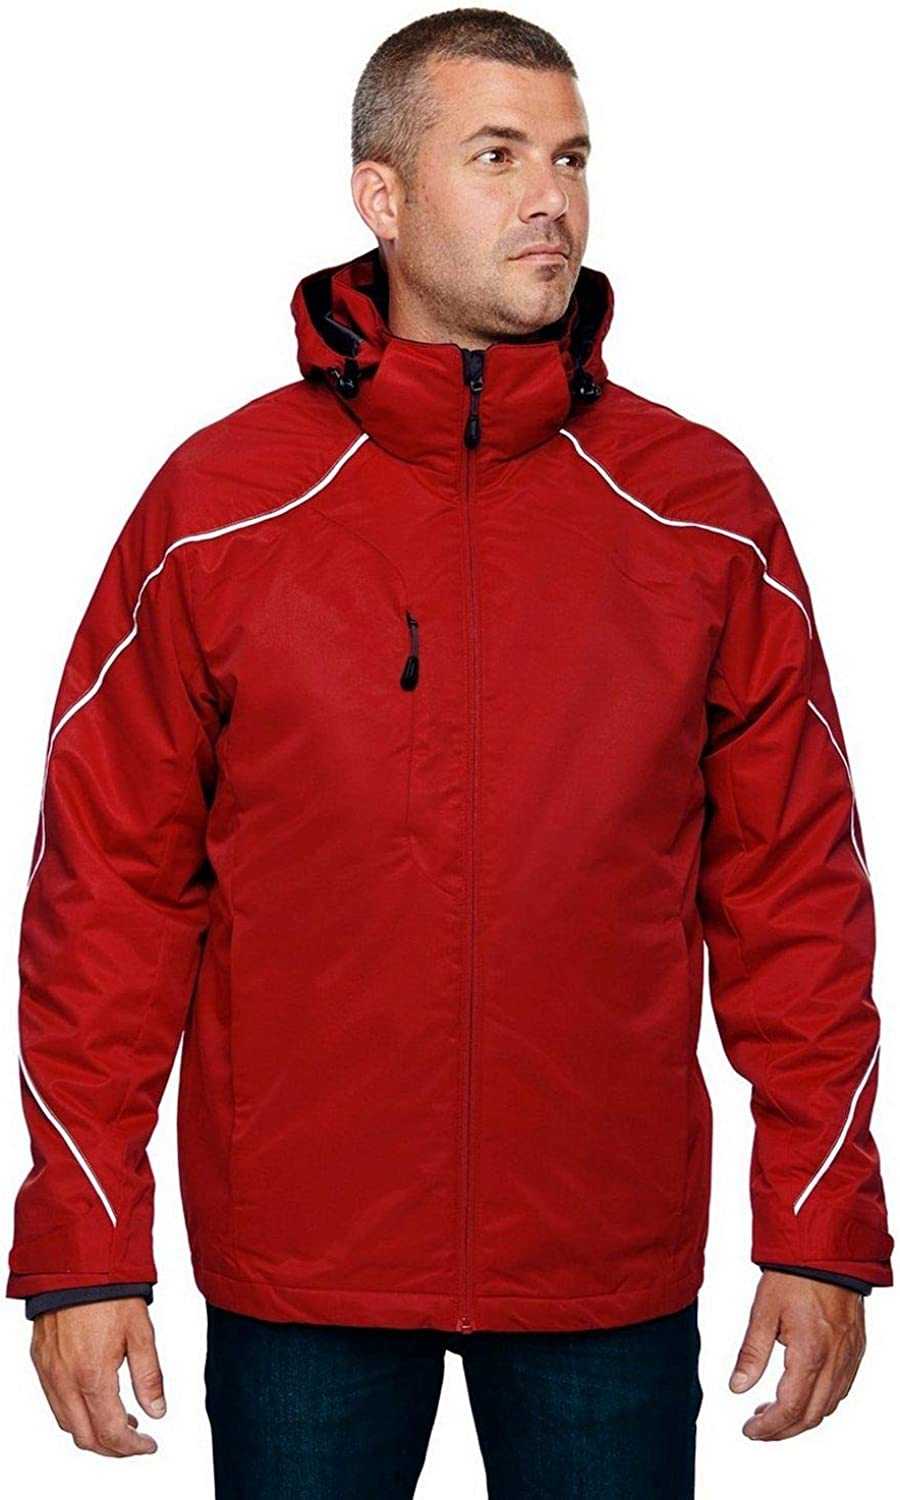 North End 3-In-1 Jacket With Bonded Fleece Liner (88196) -CLASSIC RED -4XL